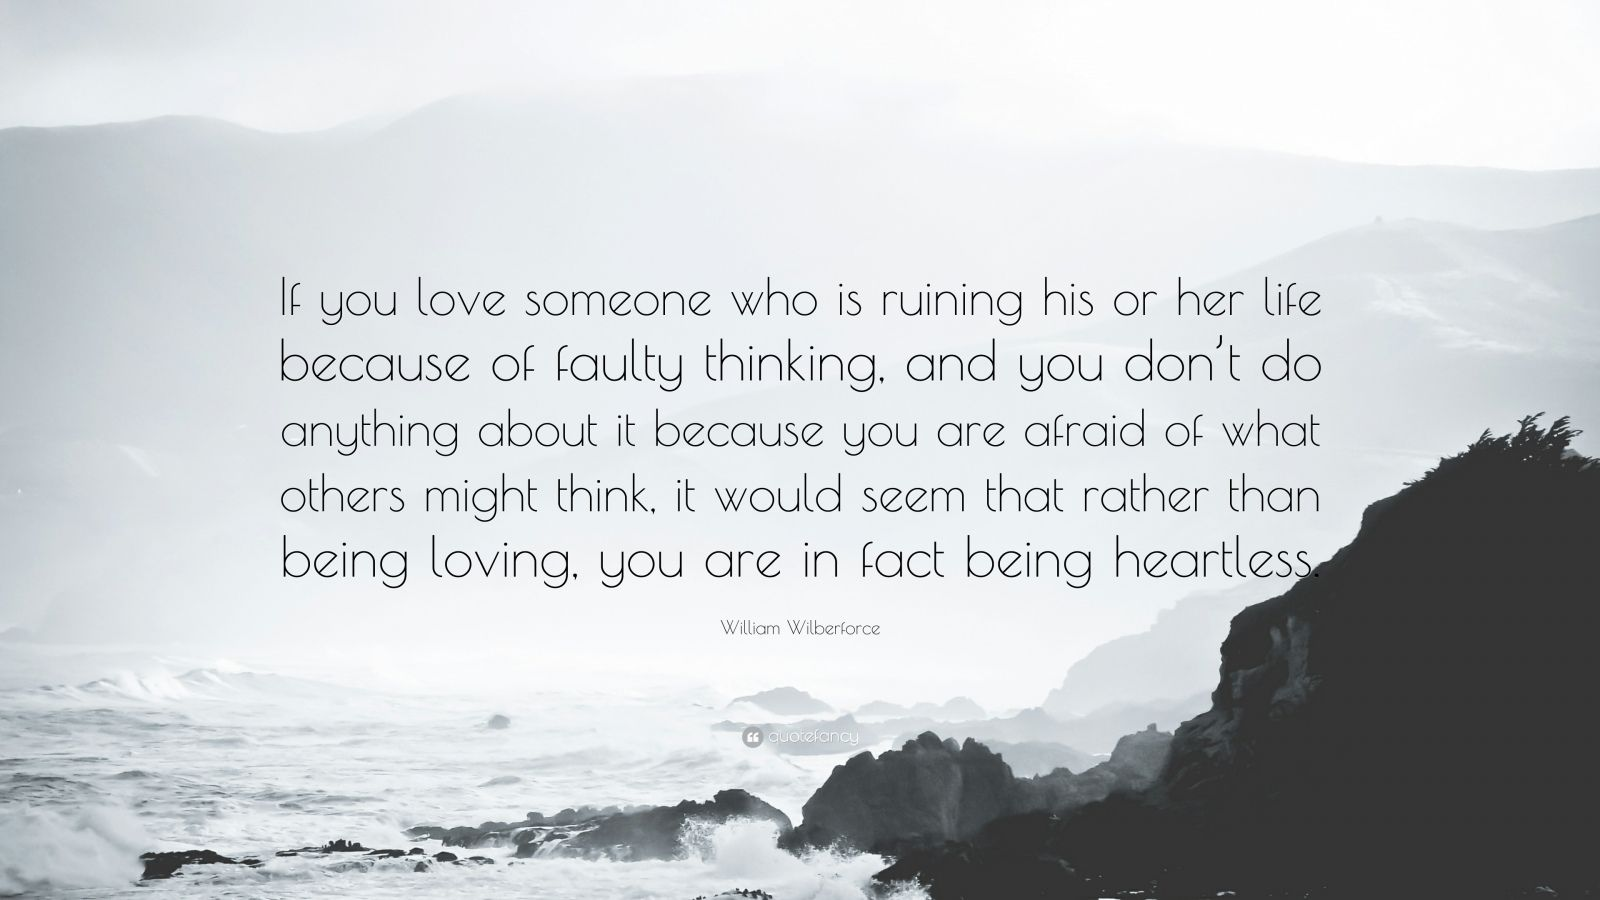 """William Wilberforce Quote: """"If you love someone who is ruining his or her life because of faulty thinking, and you don't do anything about it because you are afraid of what others might think, it would seem that rather than being loving, you are in fact being heartless."""""""